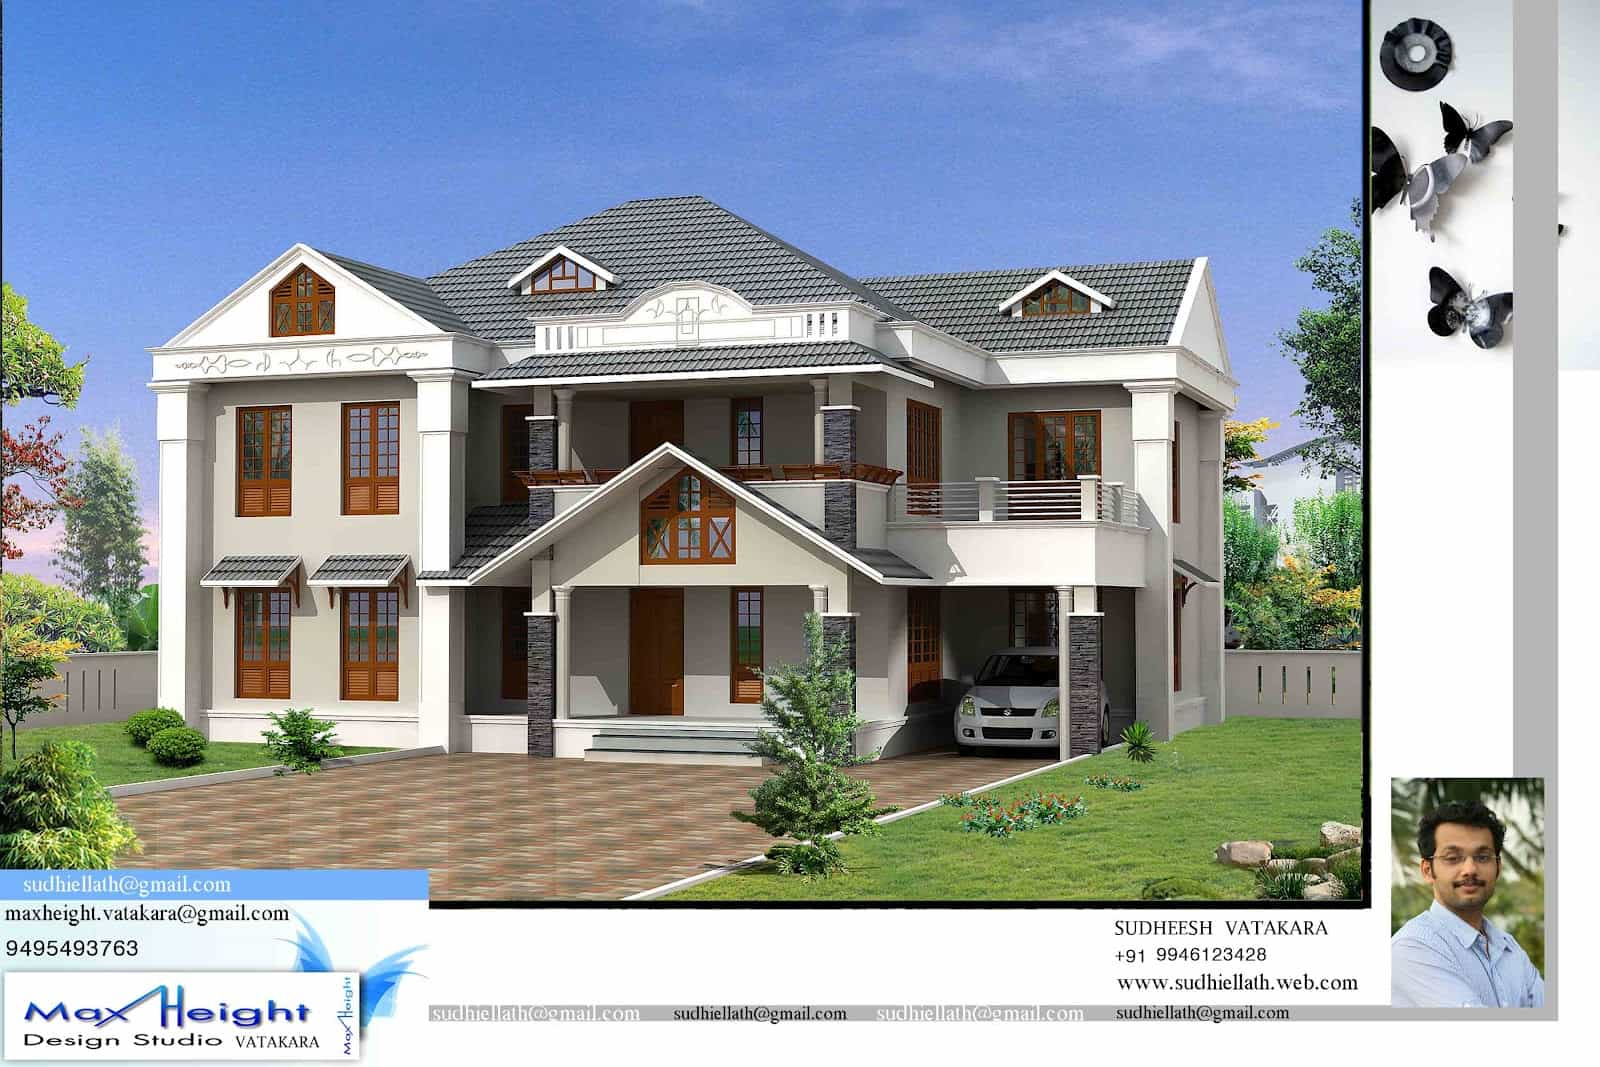 Kerala house model latest kerala style home design for Latest kerala style home designs